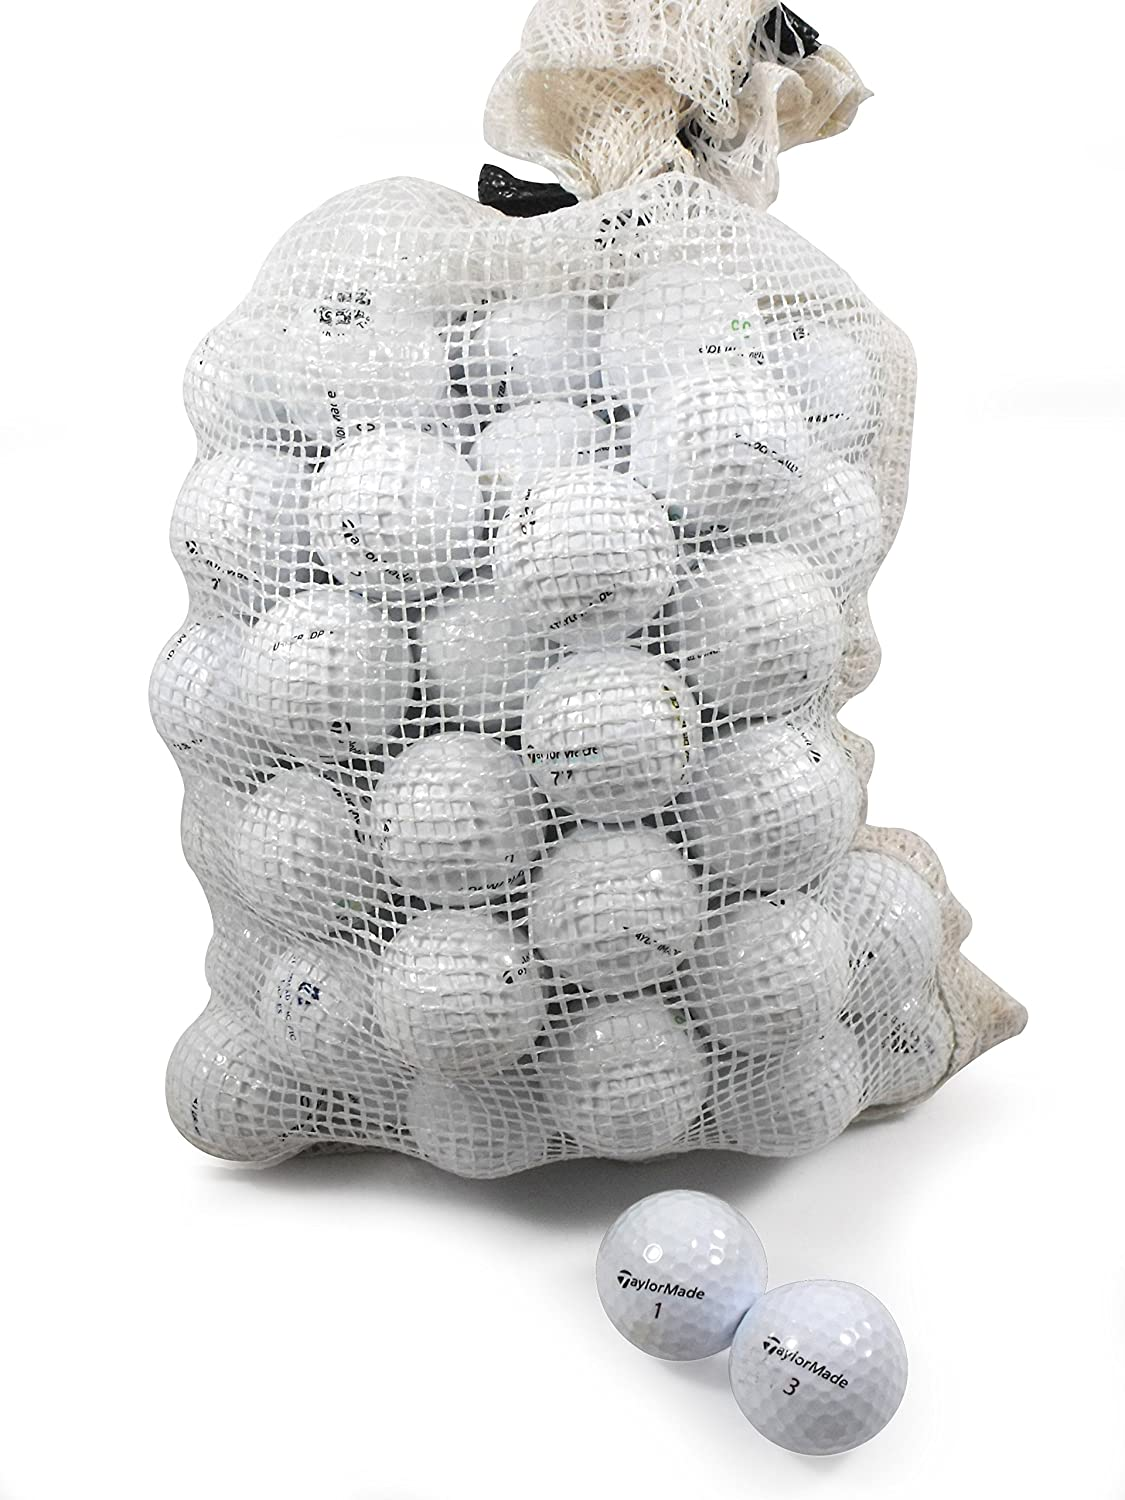 Recycled Used Golf Balls Cleaned - Taylormade B/C Grade Golf Balls 72 Balls Assorted Models in Onion Mesh Bag